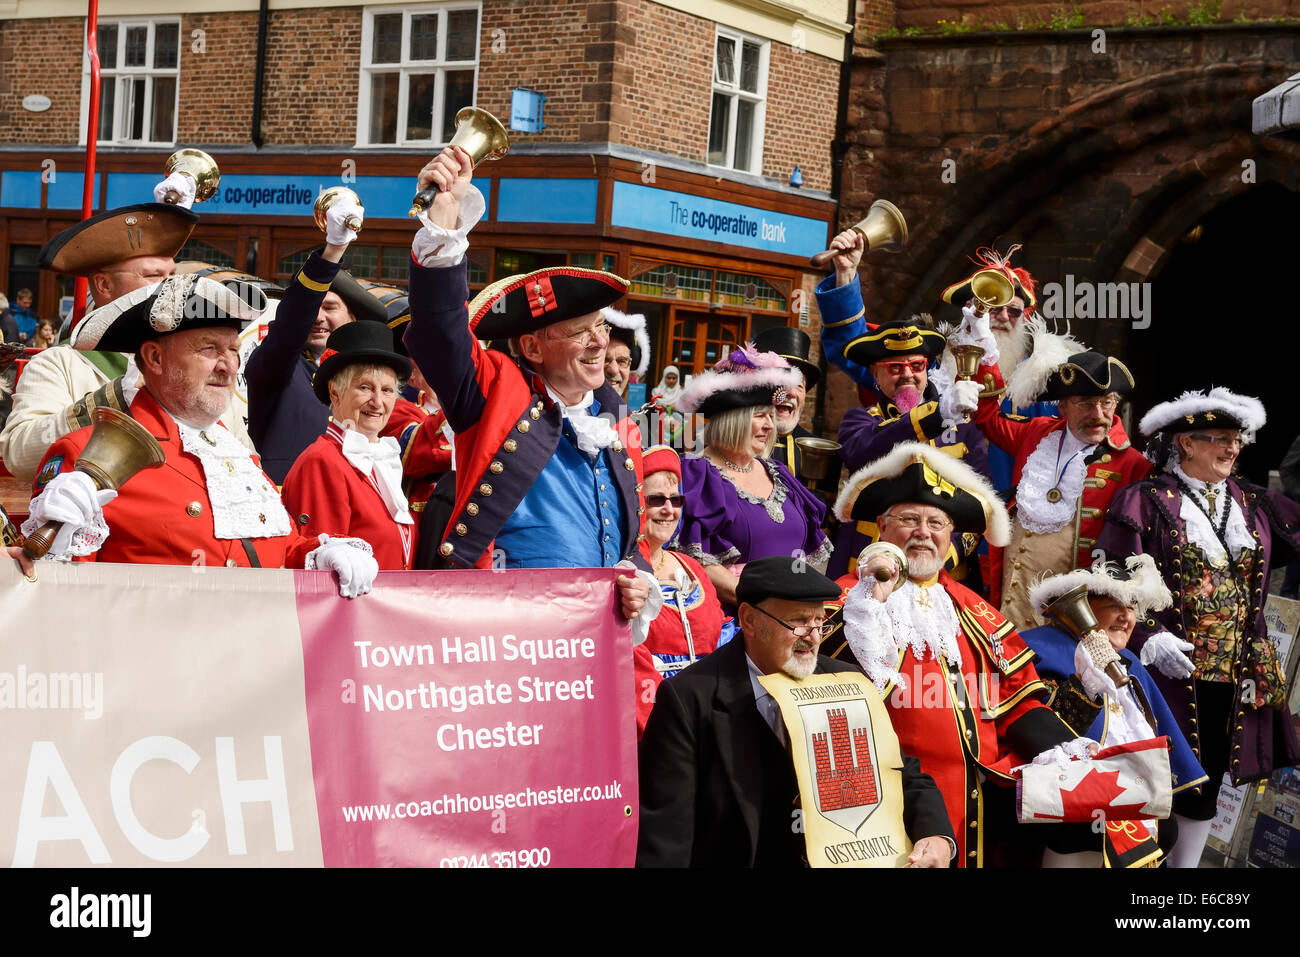 Chester, UK. 20th August, 2014. Entrants for The World Town Crier Tournament being held outside the Town Hall in - Stock Image